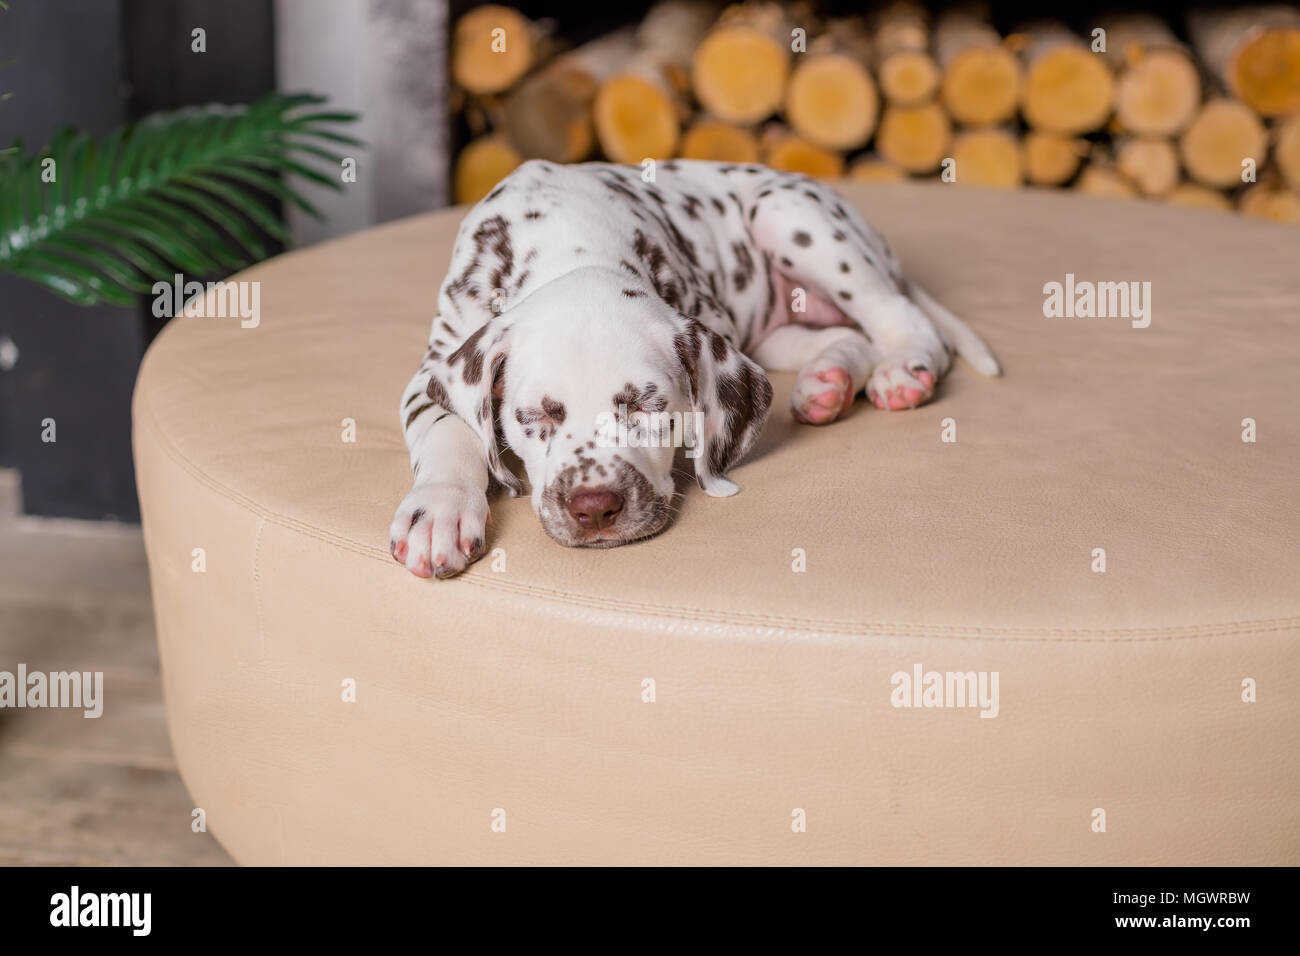 Sleeping dog at bed. Pet at home.Cute portrait of dalmatian puppy 8 weeks old. Small dalmatian Puppy. Copy space - Stock Image